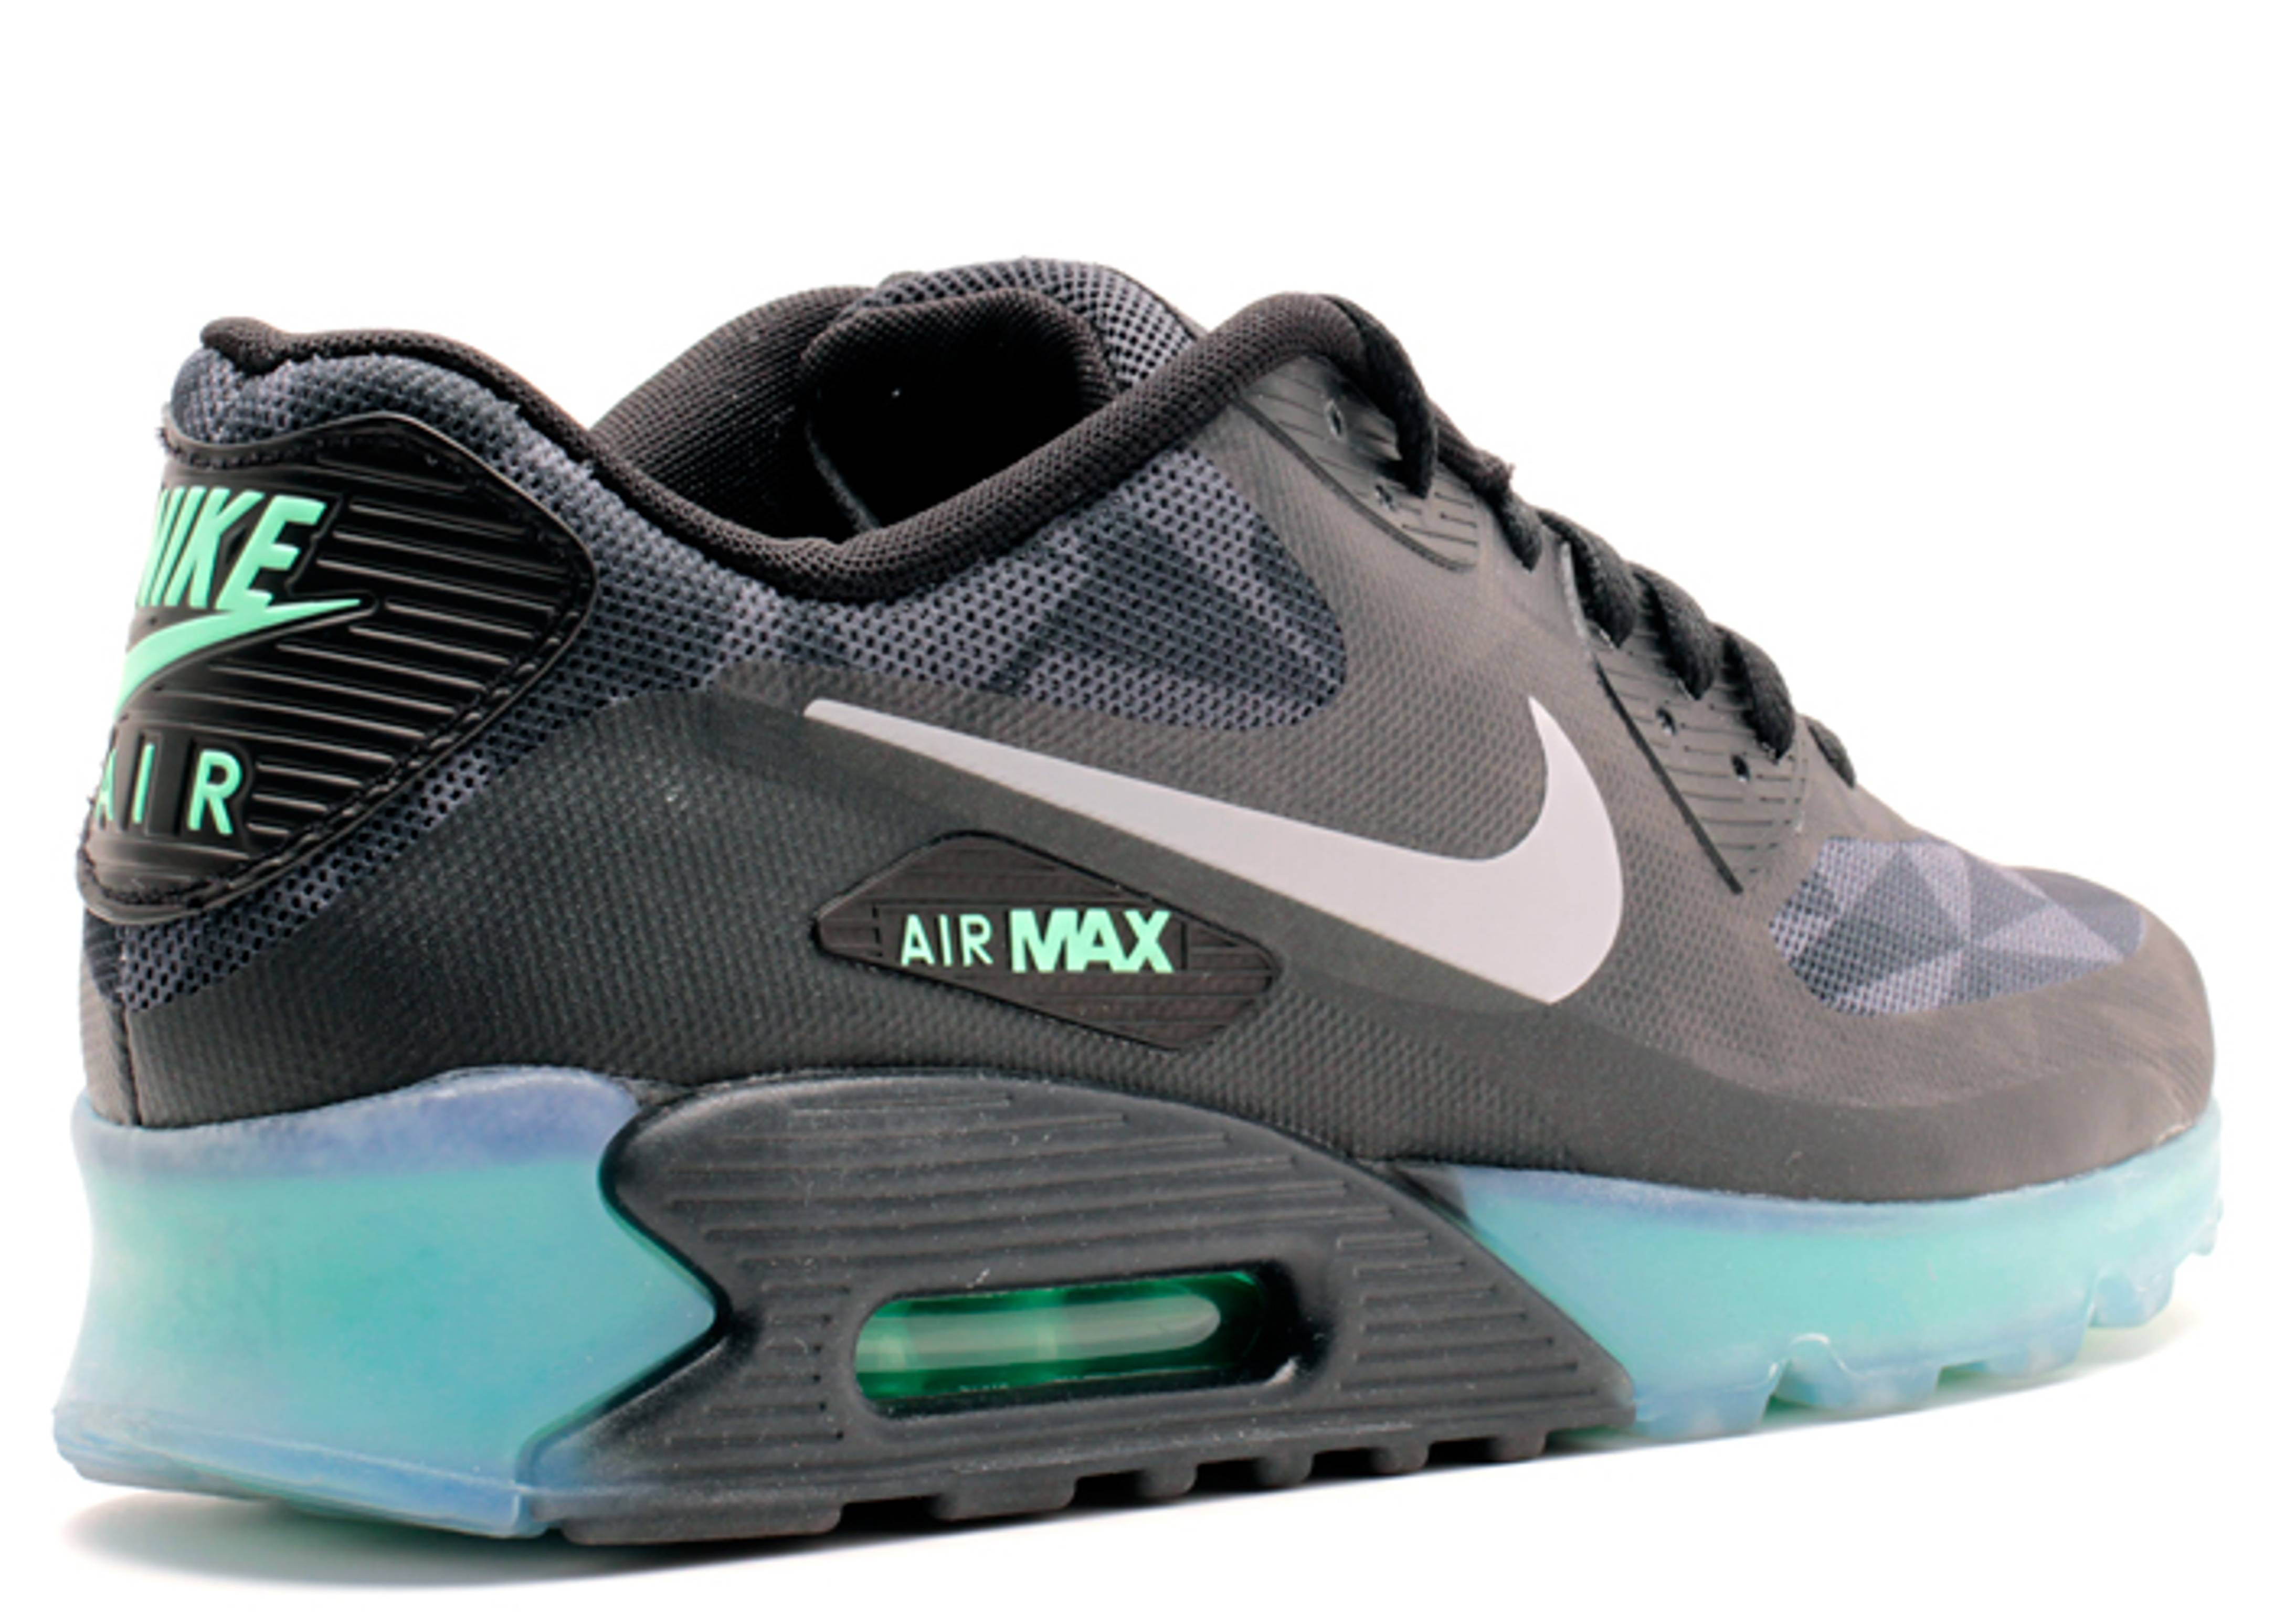 Nike Air Max 90 Ice QS Black, Cool Grey & Anthracite | END.